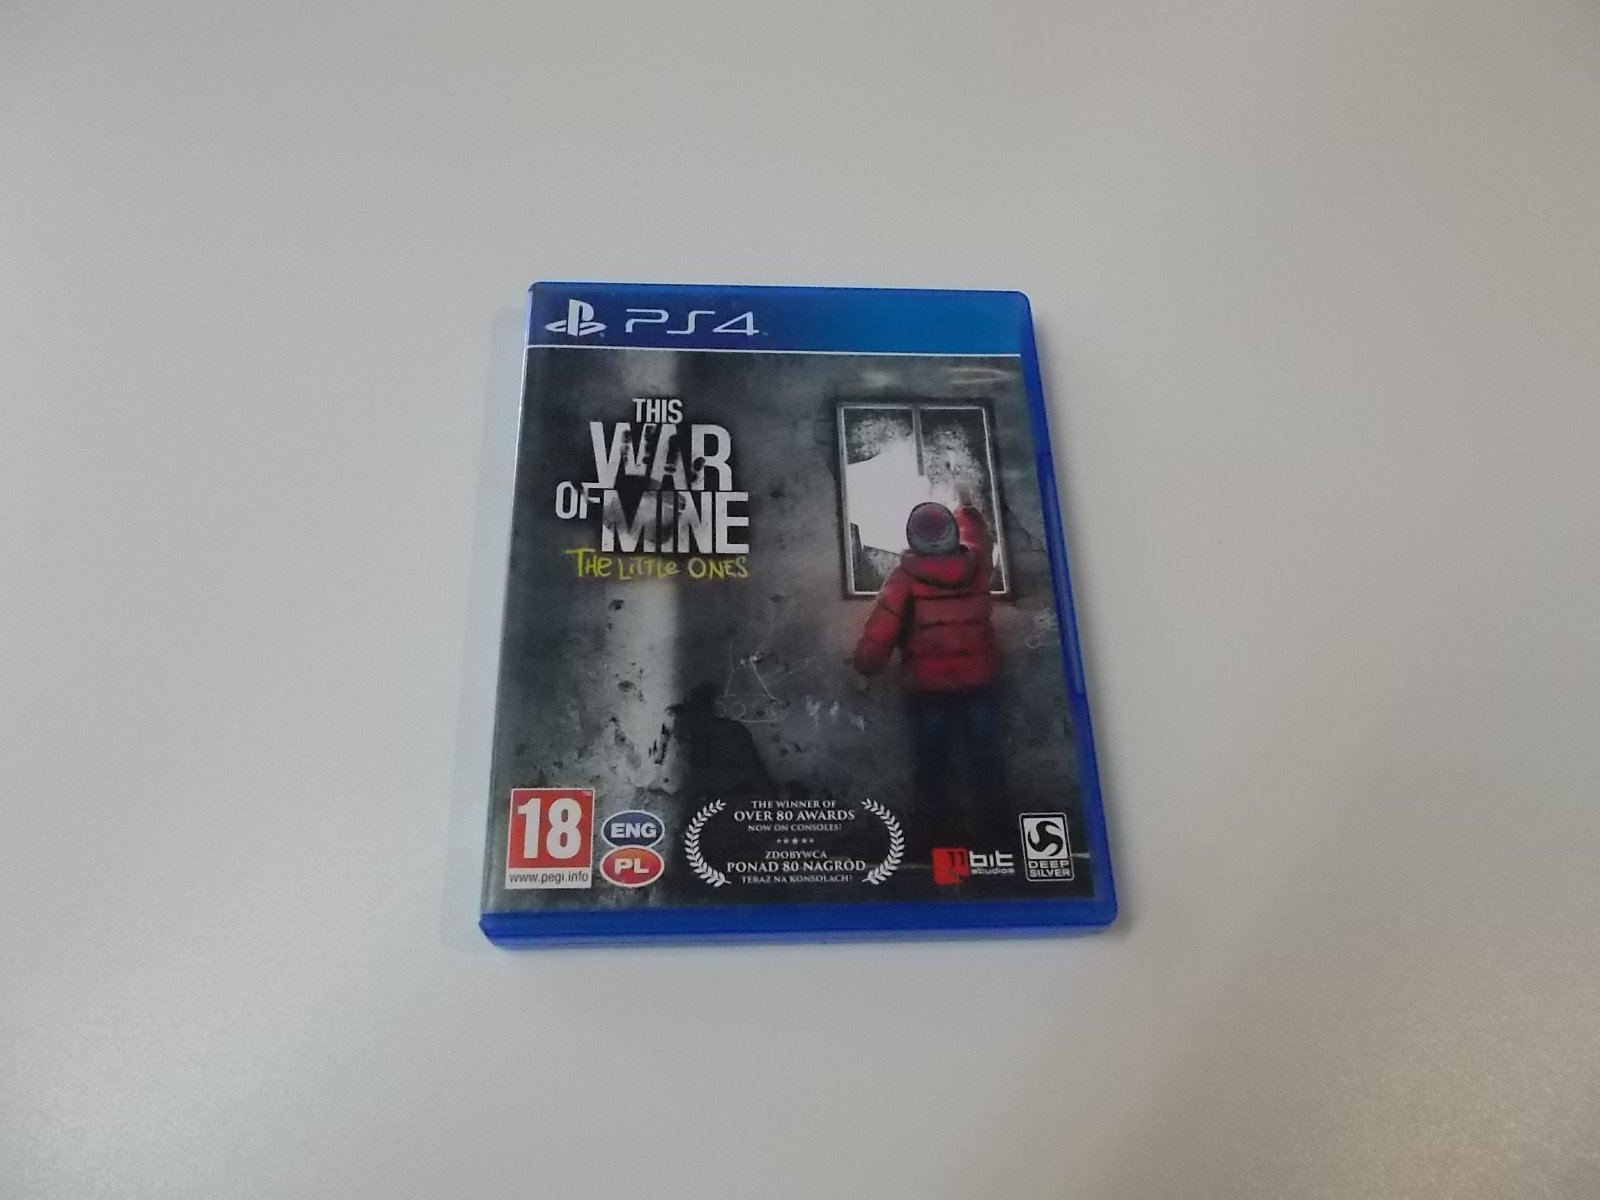 THIS WAR OF MINE The Little Ones - GRA Ps4 - Opole 0455